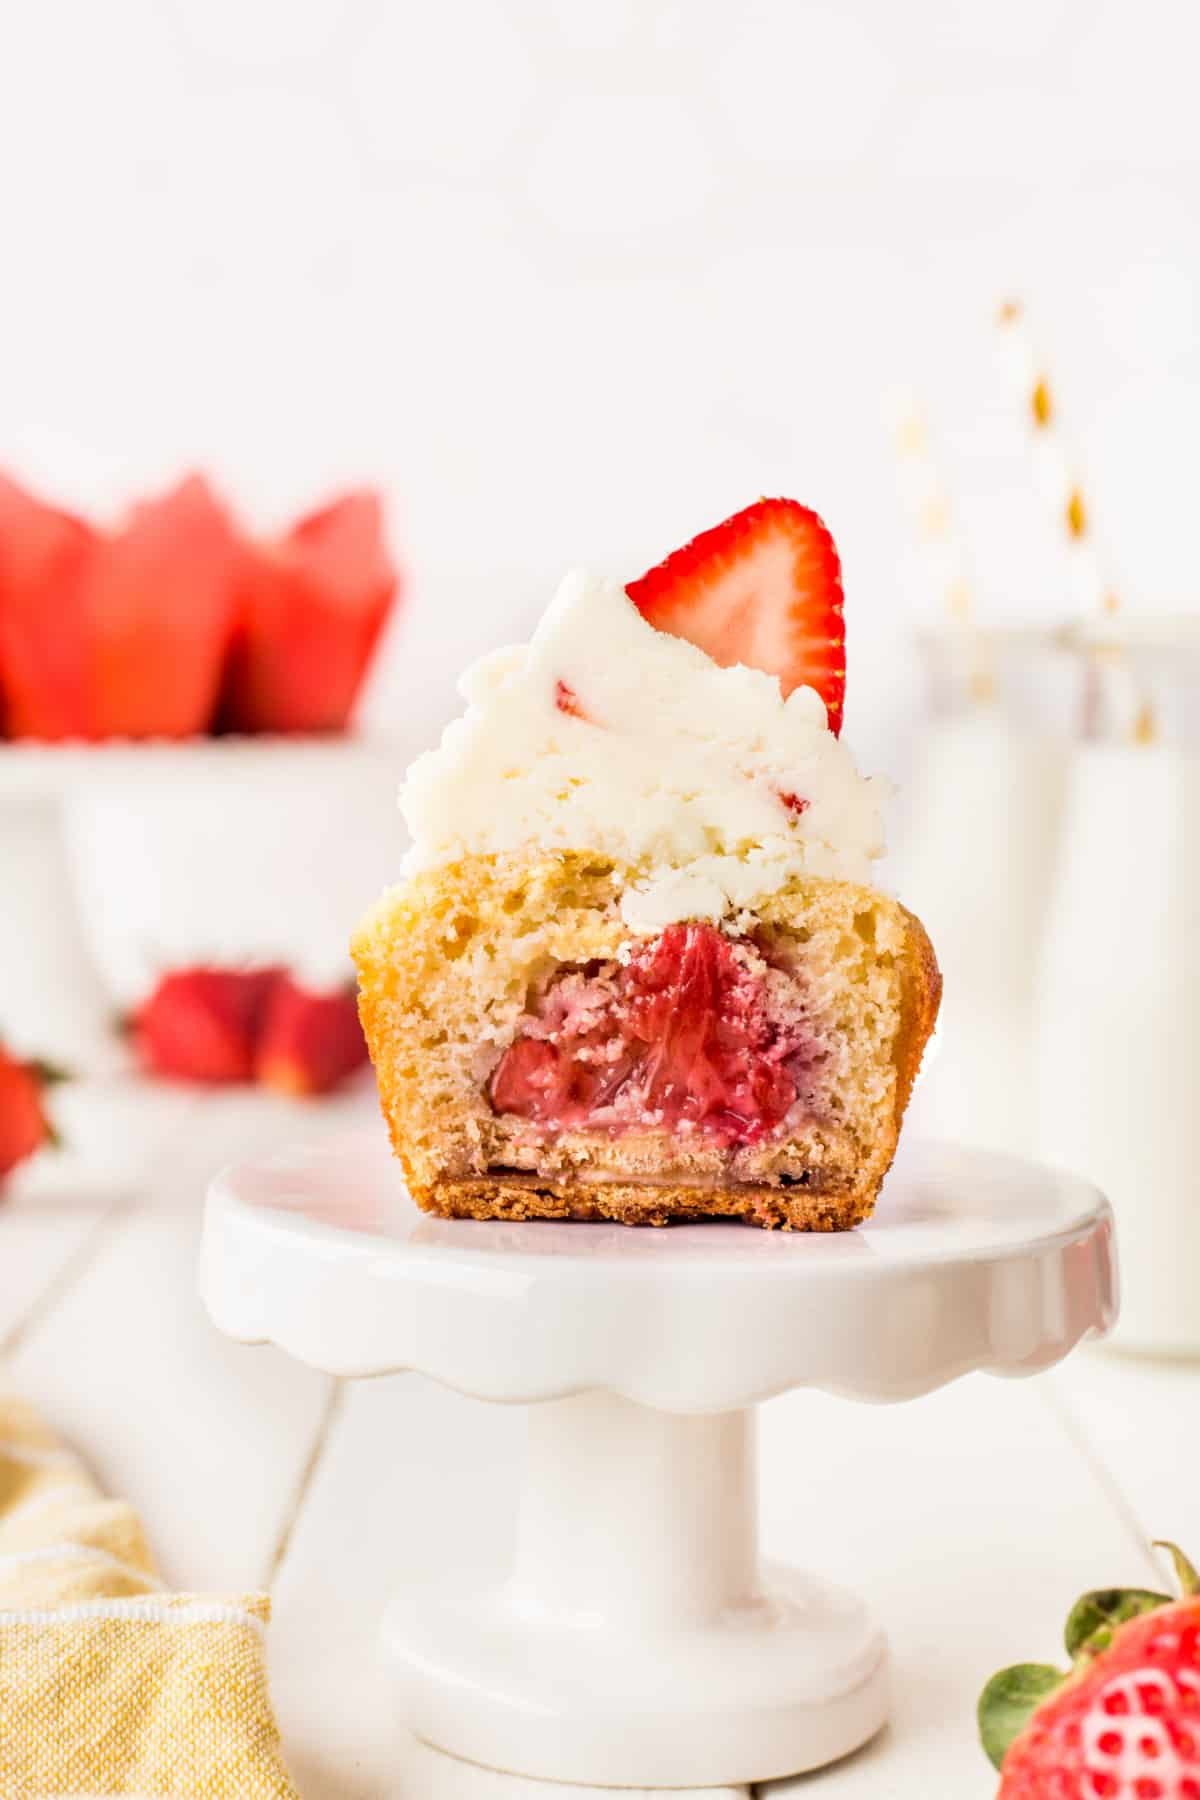 A cupcake sliced in half showing a cooked strawberry inside.